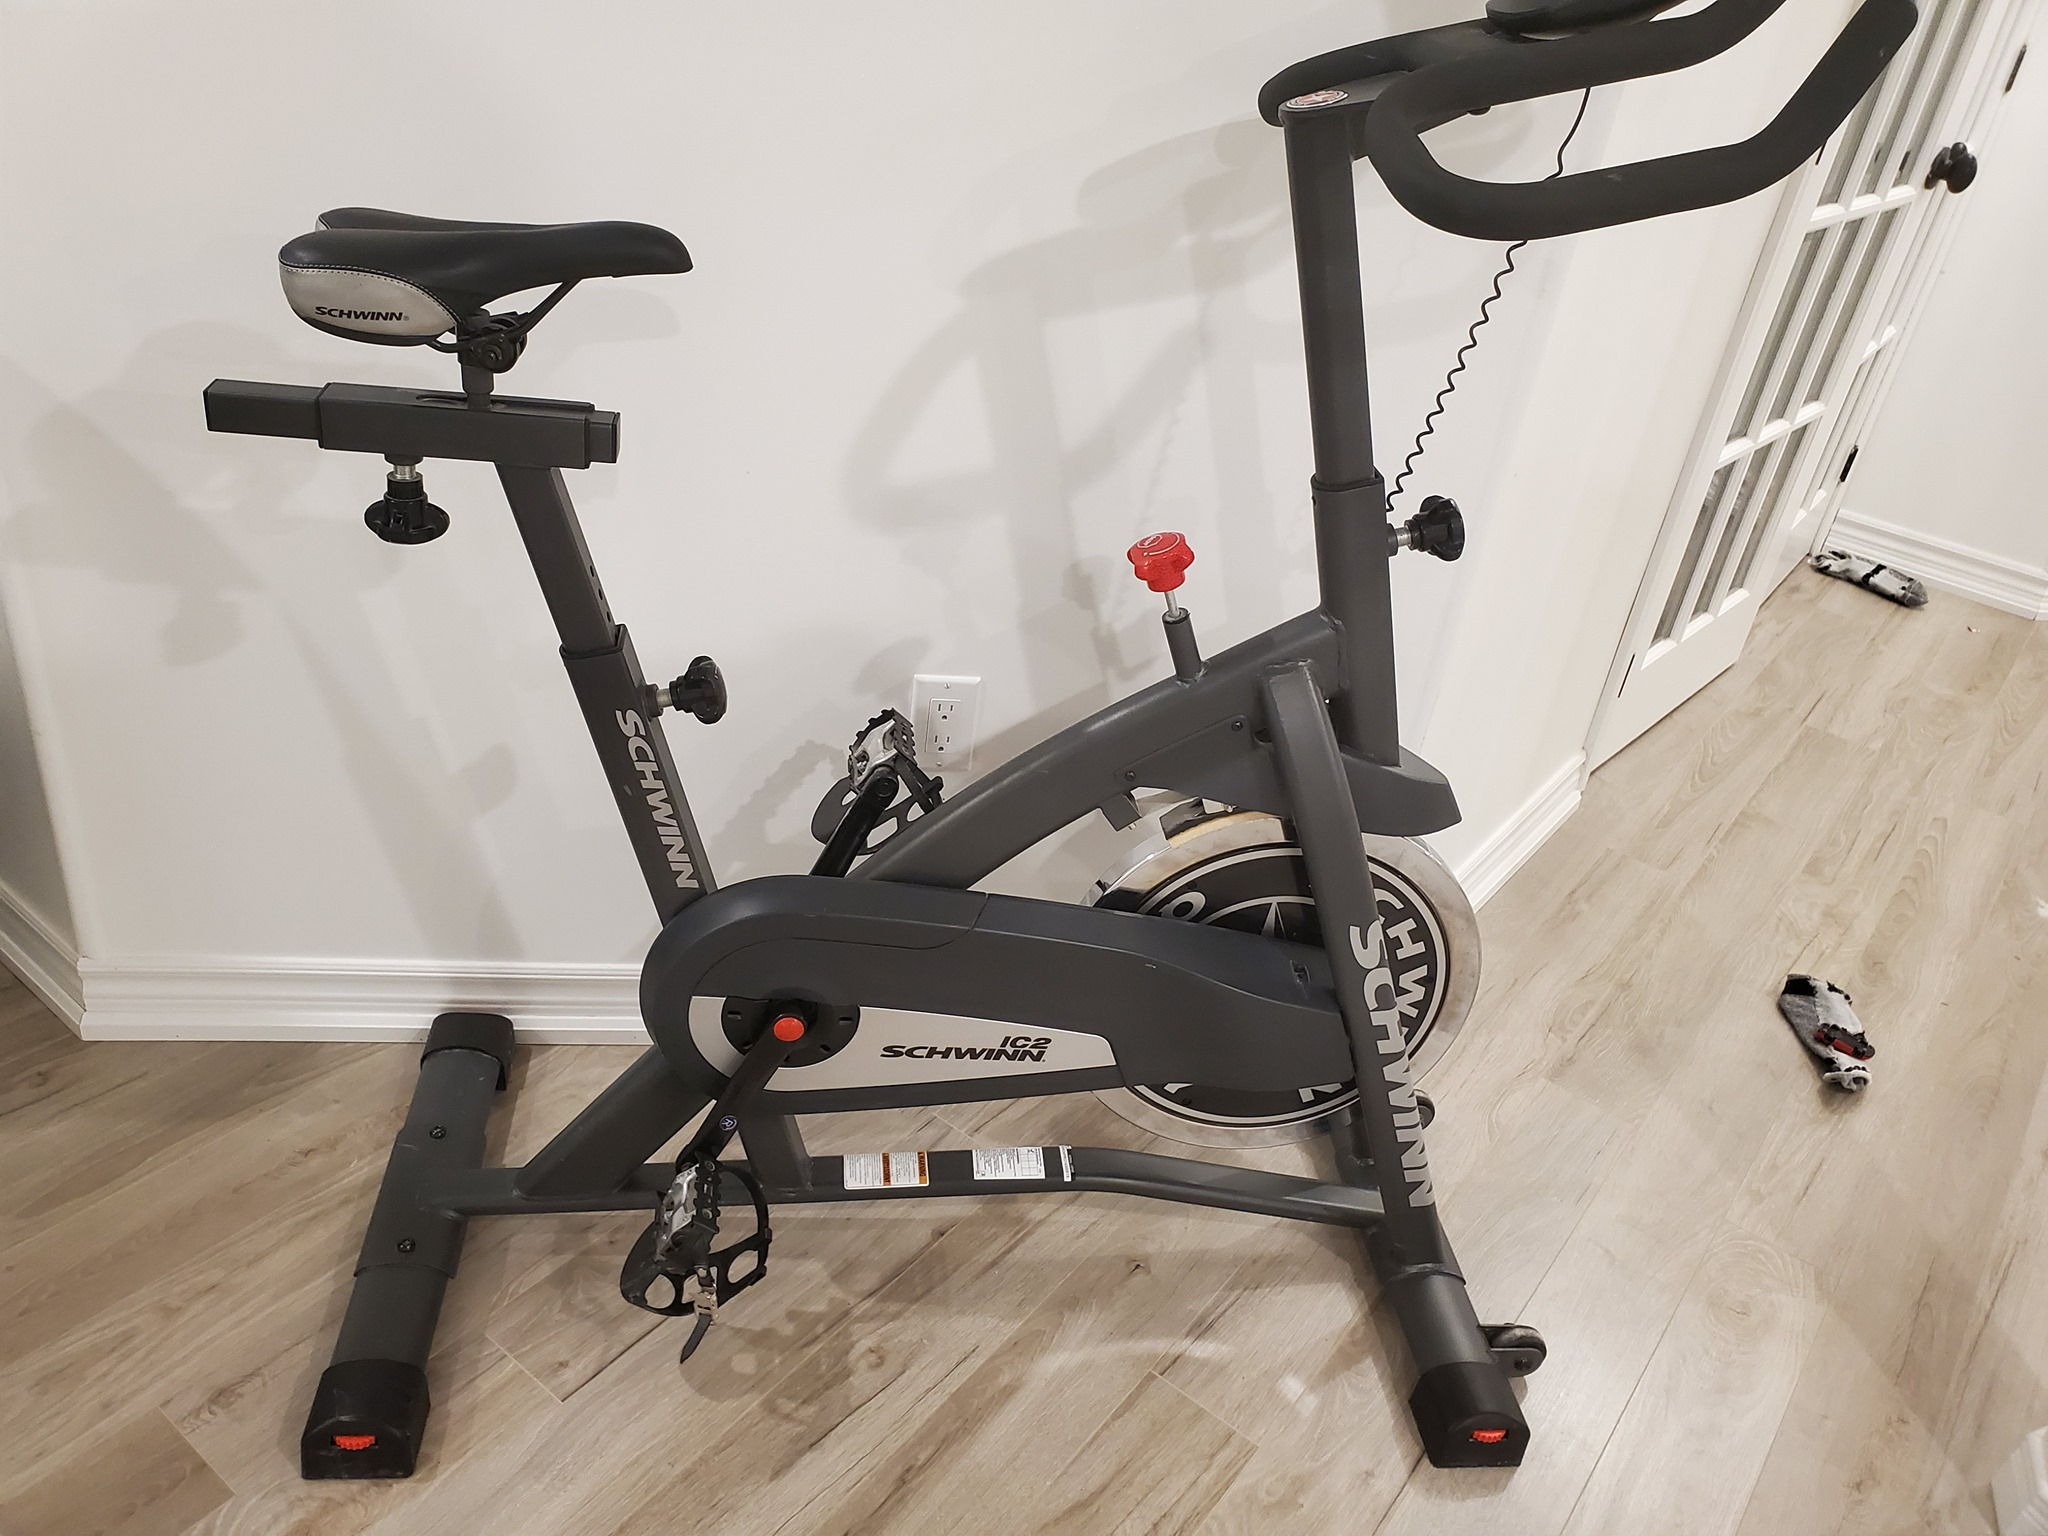 A quick breakdown of the Schwinn IC2 and its features